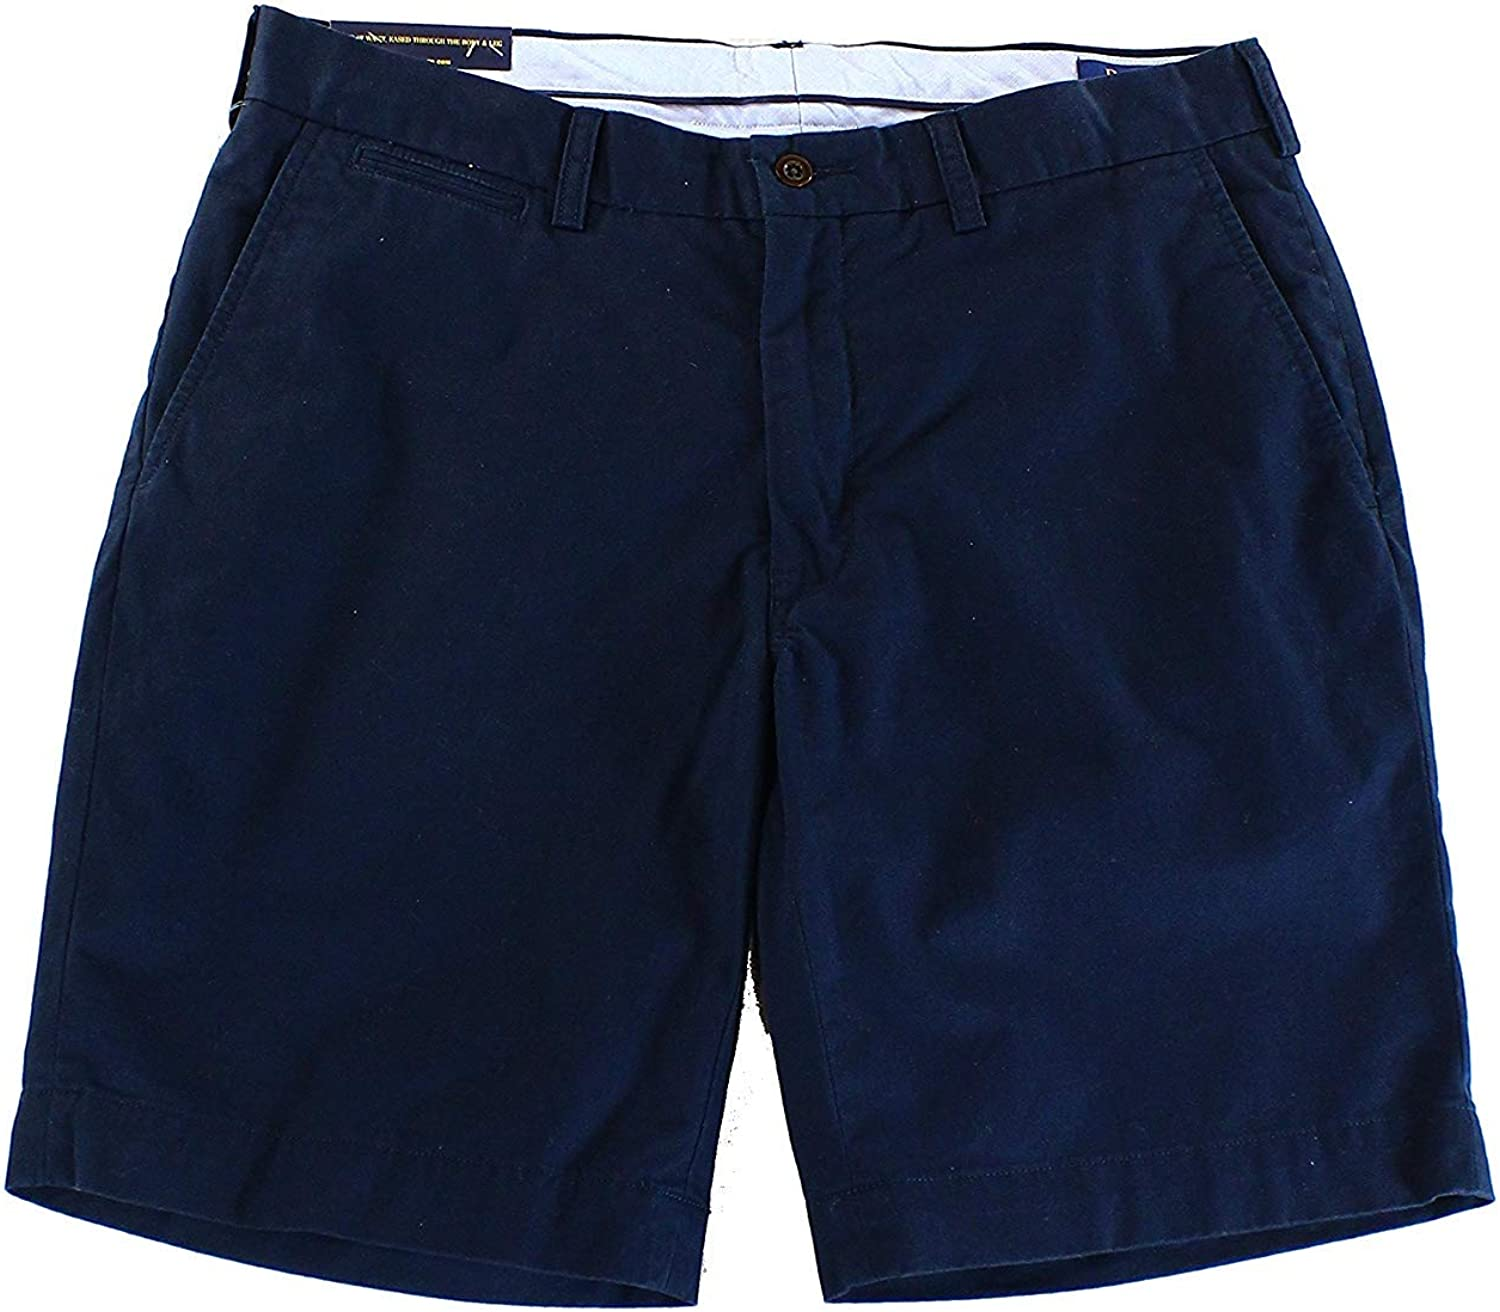 Polo Ralph Lauren Mens Classic-Fit Flat Front Casual Shorts, 48B, Navy